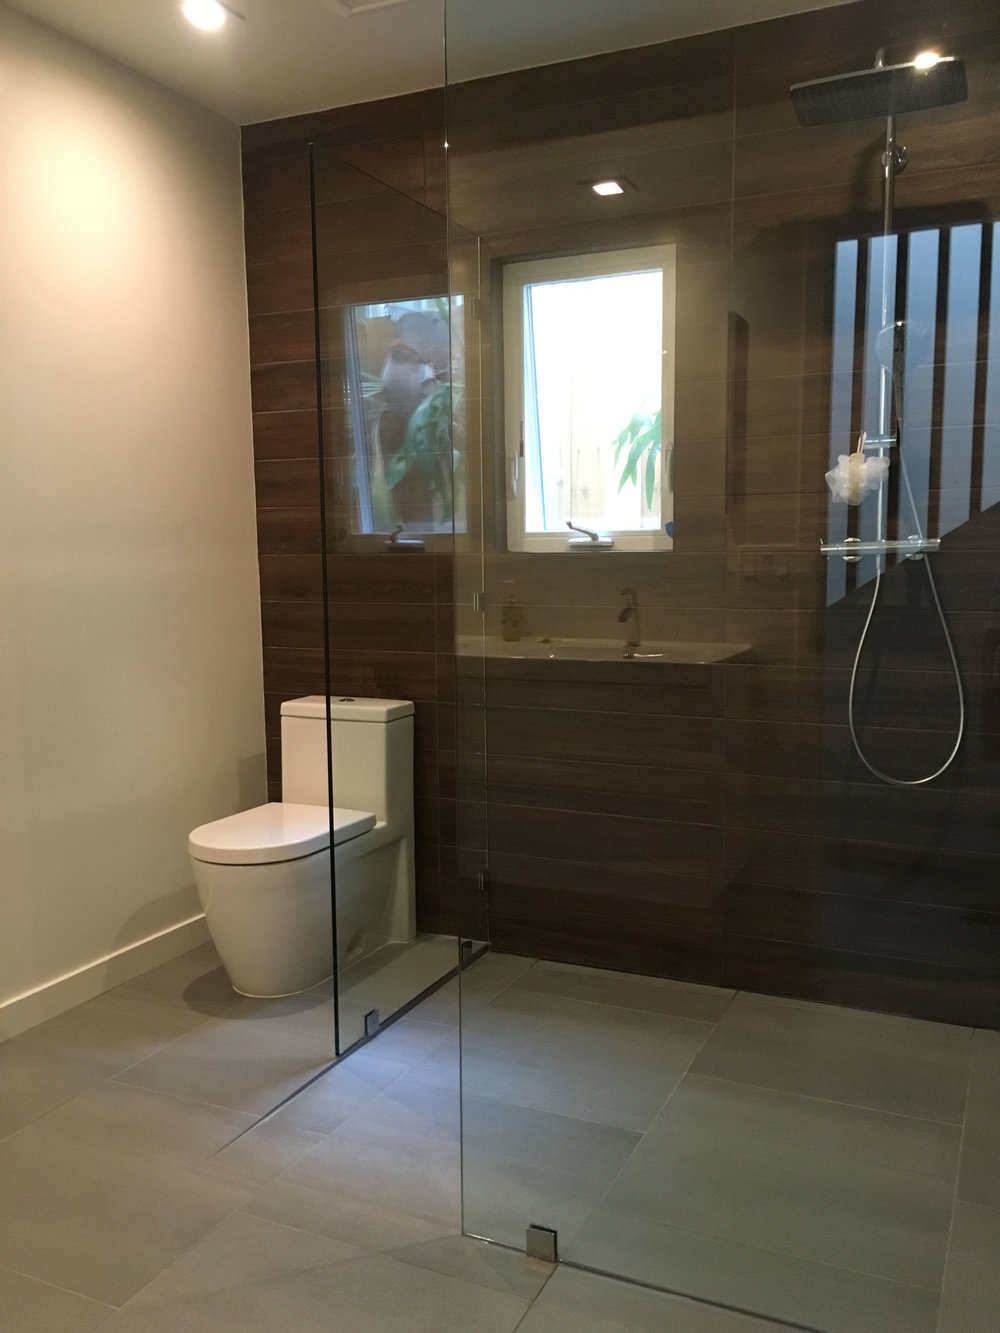 Bath with lateral drain, Duravit toilet, Hansgrohe shower. Ceiling ductwork was rerouted into a soffit above the sink and vanity allowing ceiling height to be raised to 10 ft.